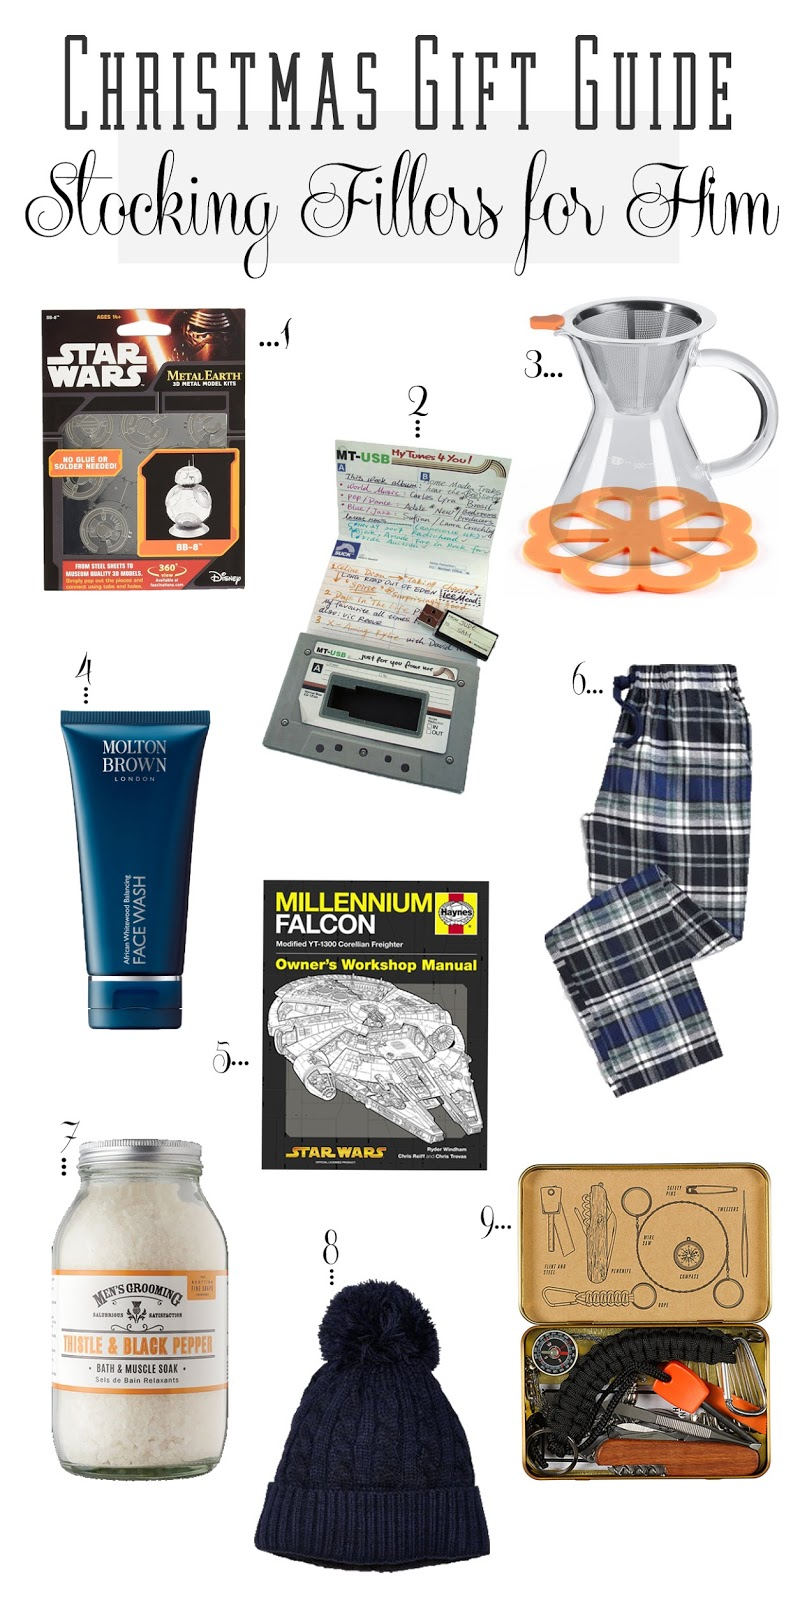 Christmas-Gift-Guide-Stocking-Fillers-for-Him